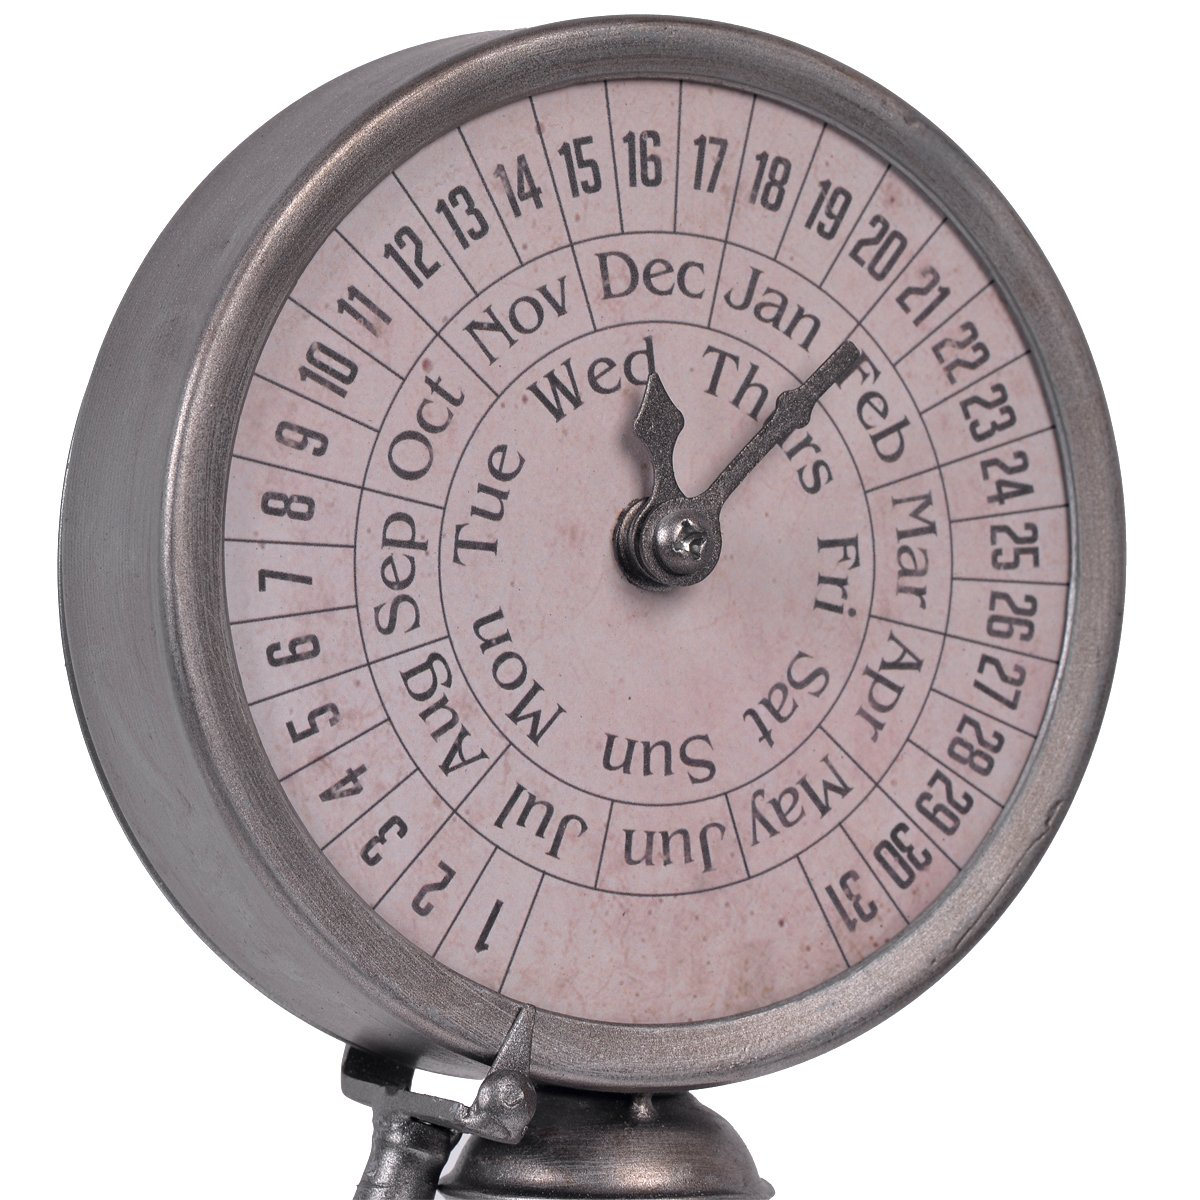 Nikky Home Vintage Standing Metal Perpetual Calendar Desktop for Decoration, White by NIKKY HOME (Image #6)